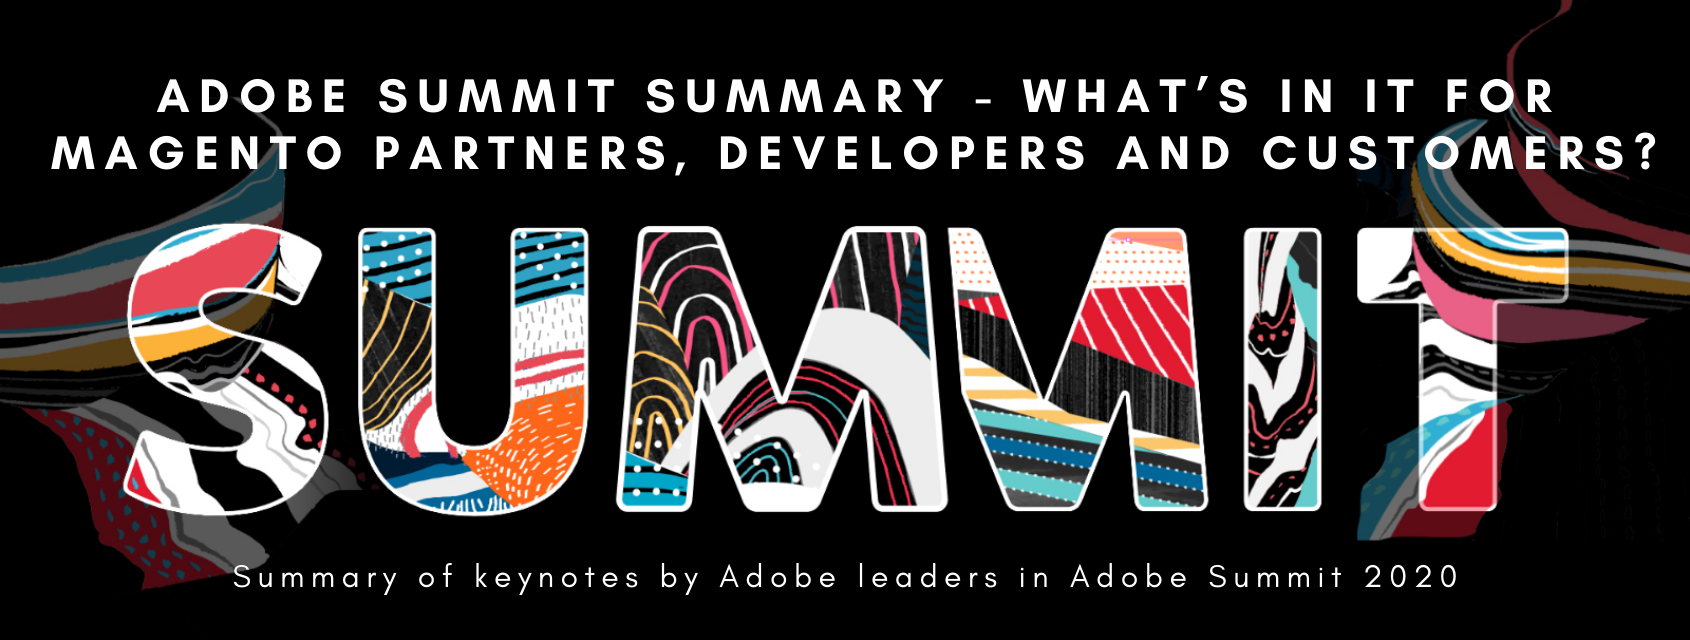 Adobe Summit Summary – What's in it for Magento partners, developers and customers?